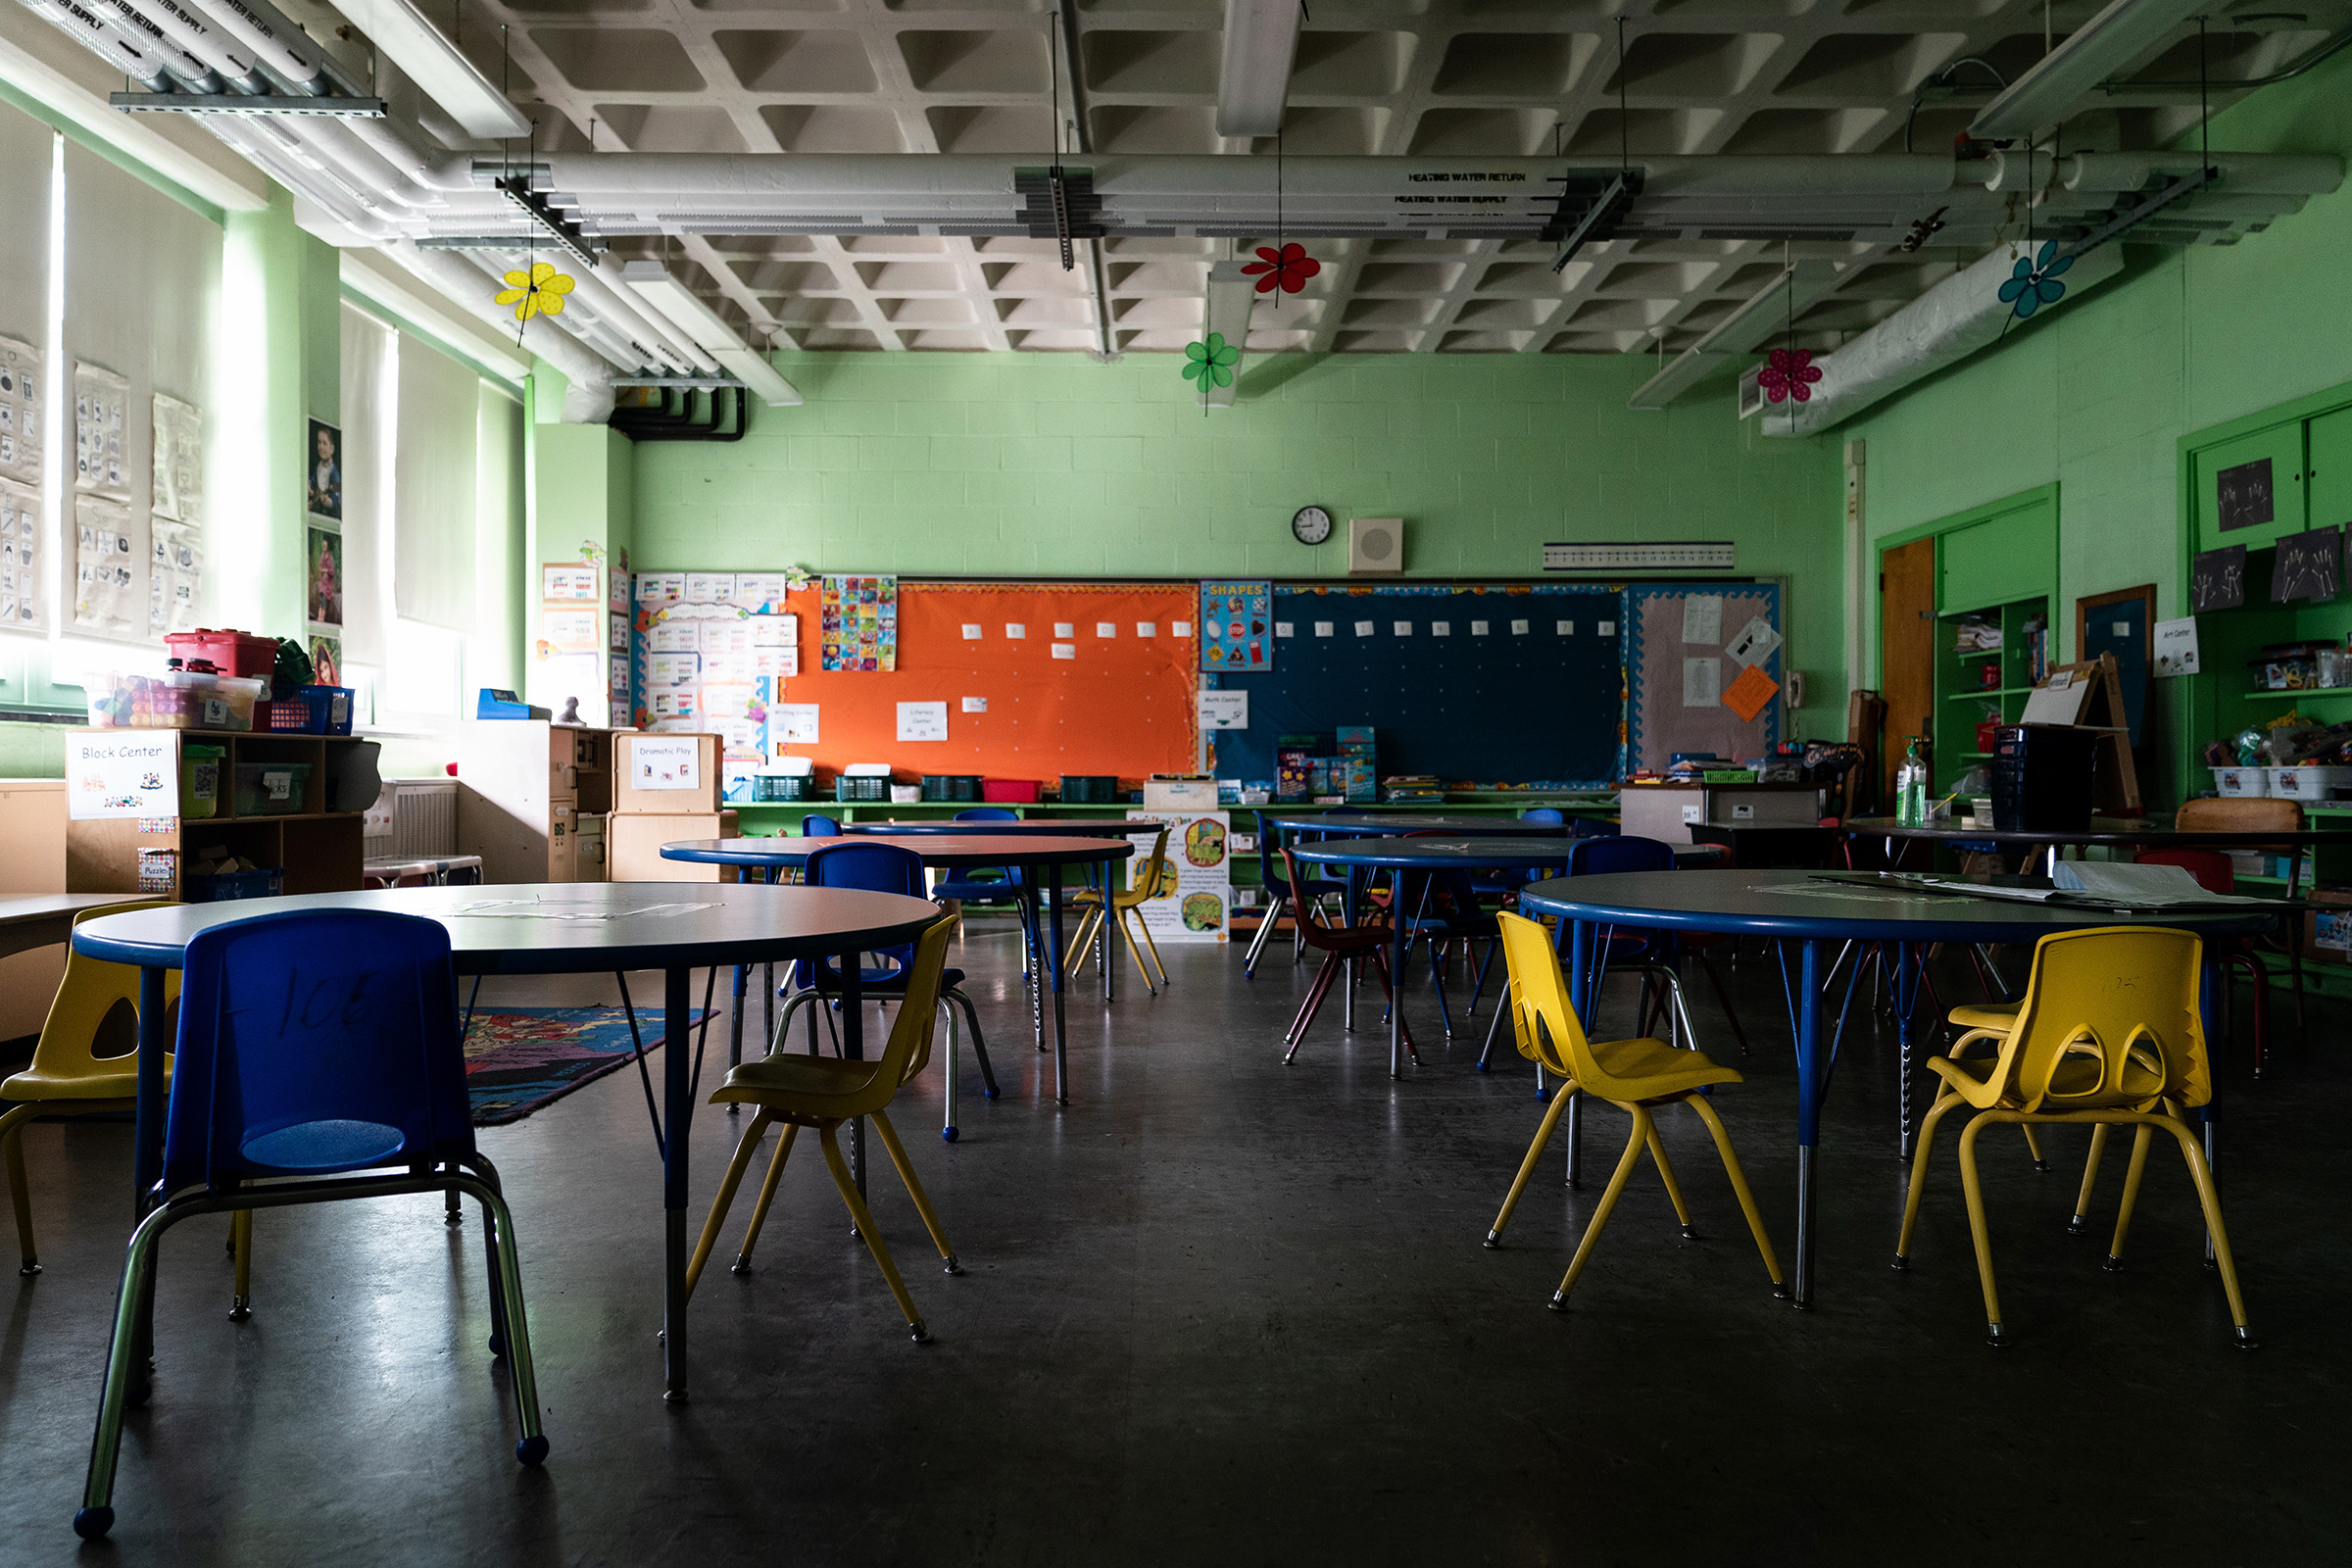 An empty classroom at Sinclair Lane Elementary School in Baltimore